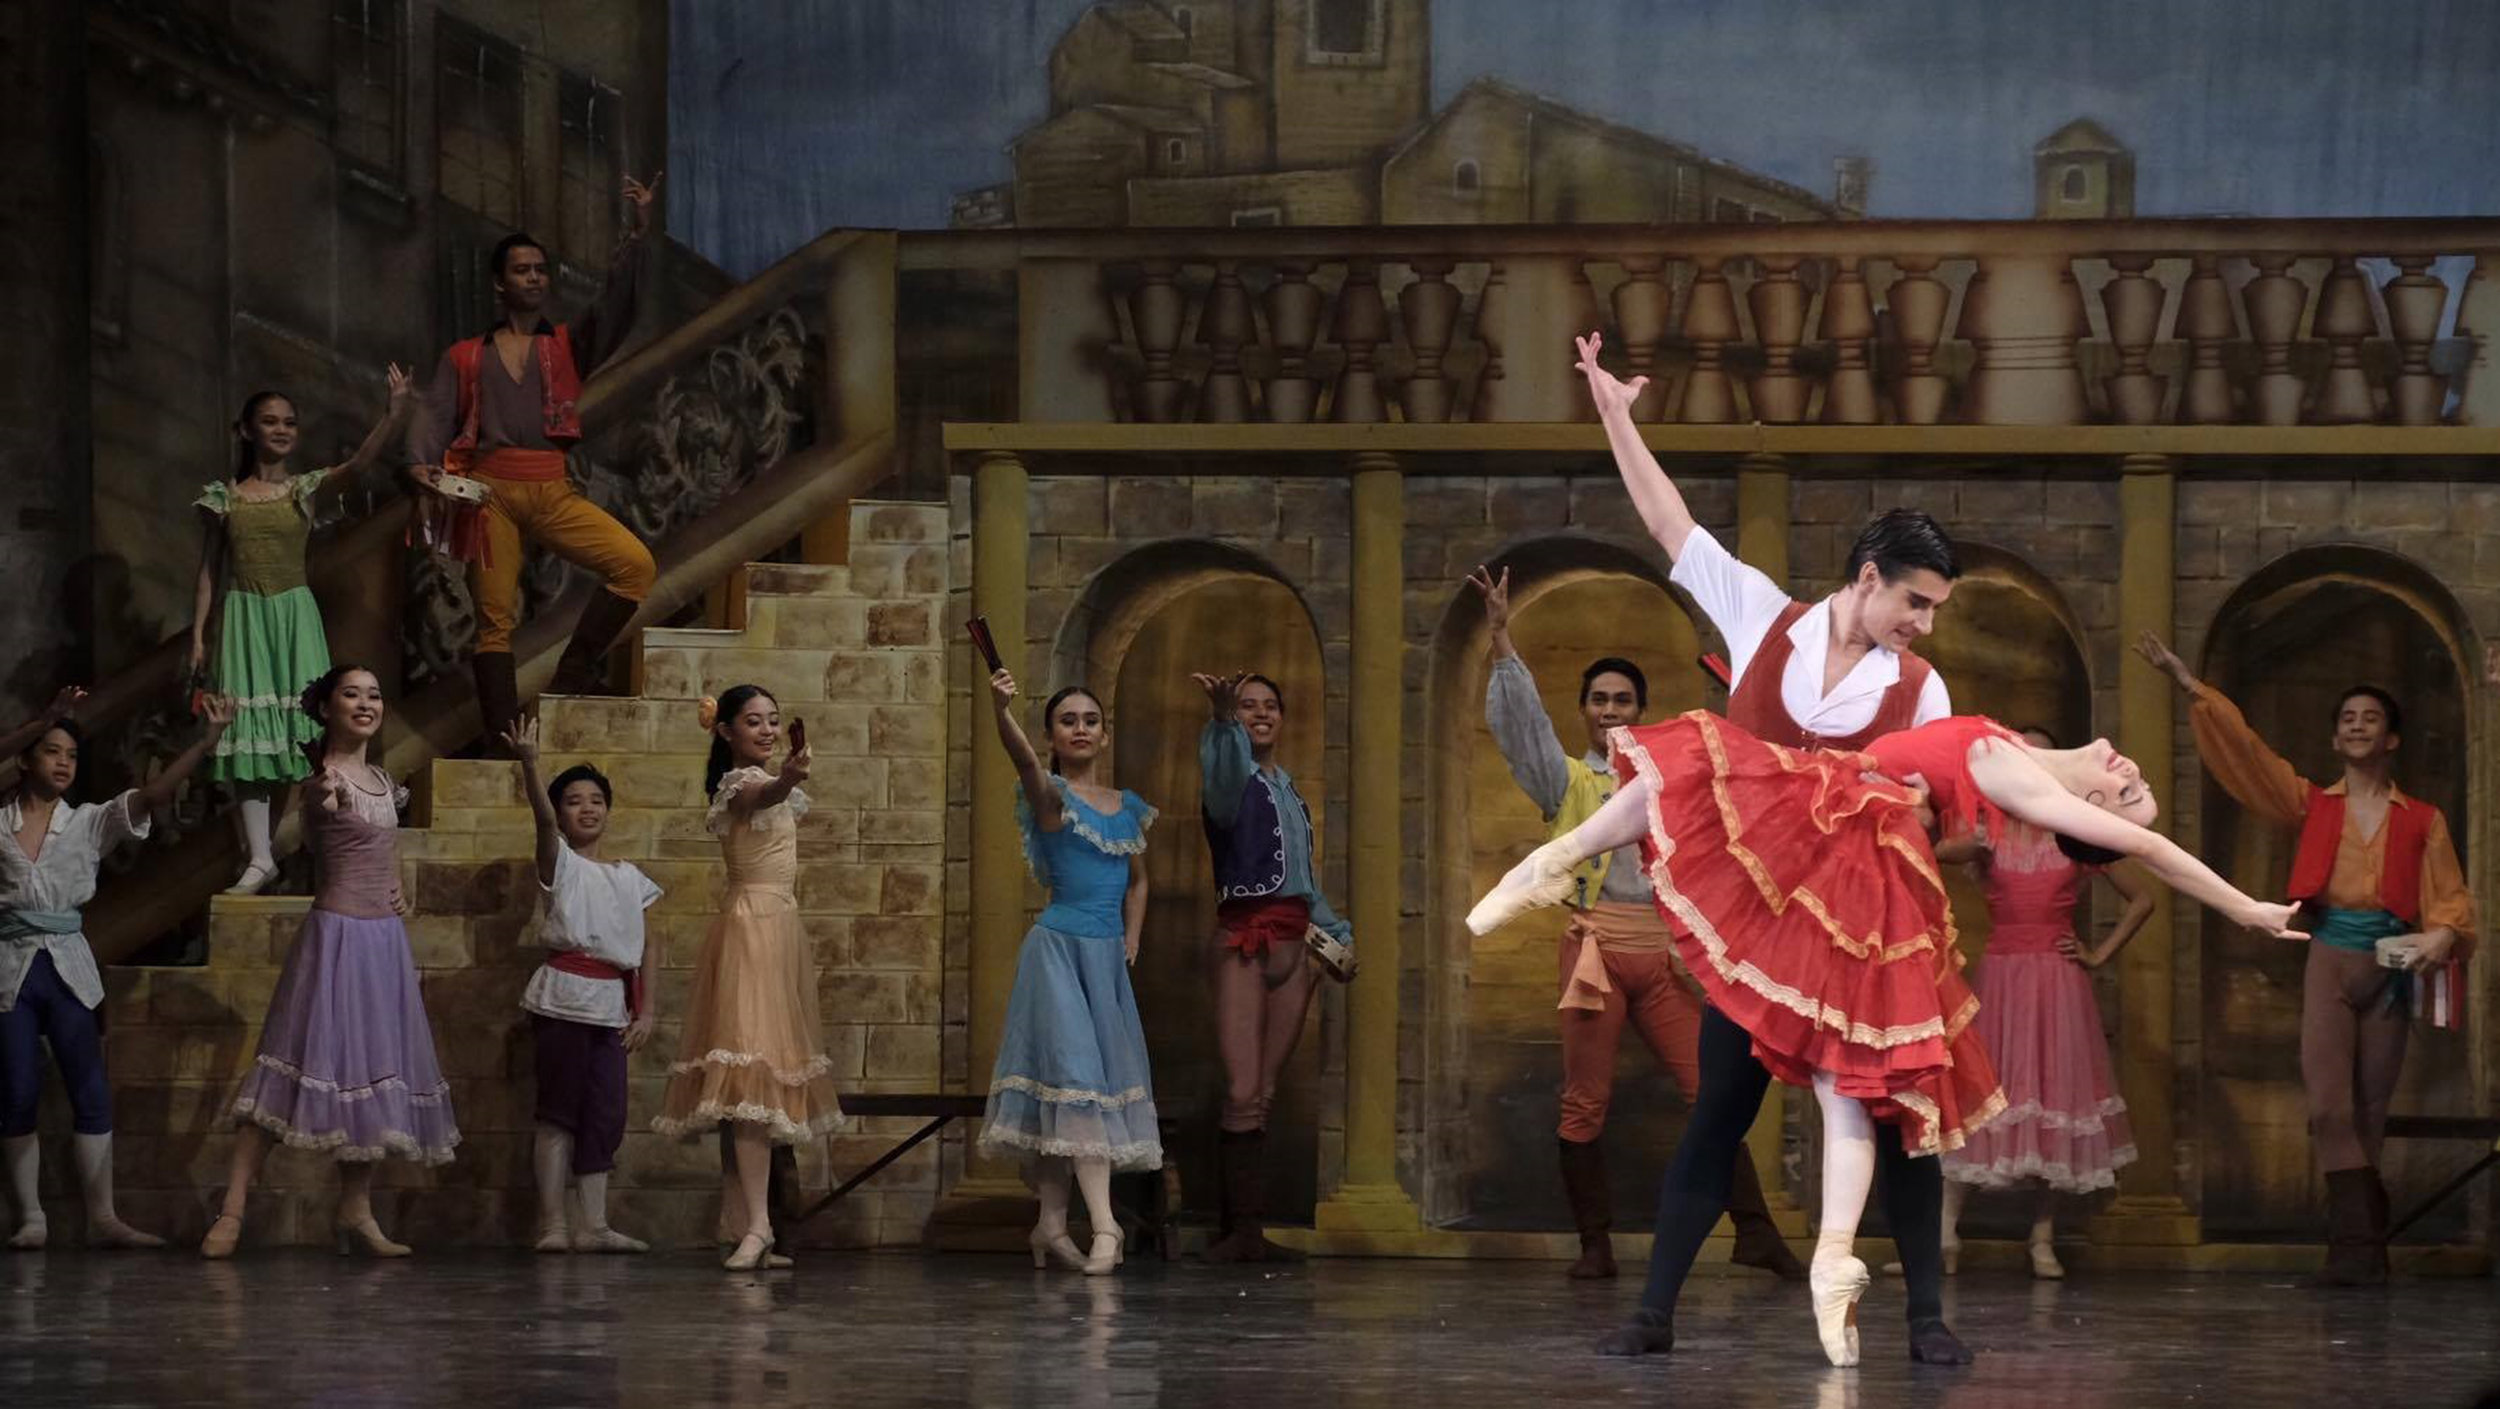 Katherine Barkman and Mikhail Martynyuk give a rousing performance as Kitri and Basilio in Ballet Manila's    Don Quixote   . Photo by G-nie Arambulo